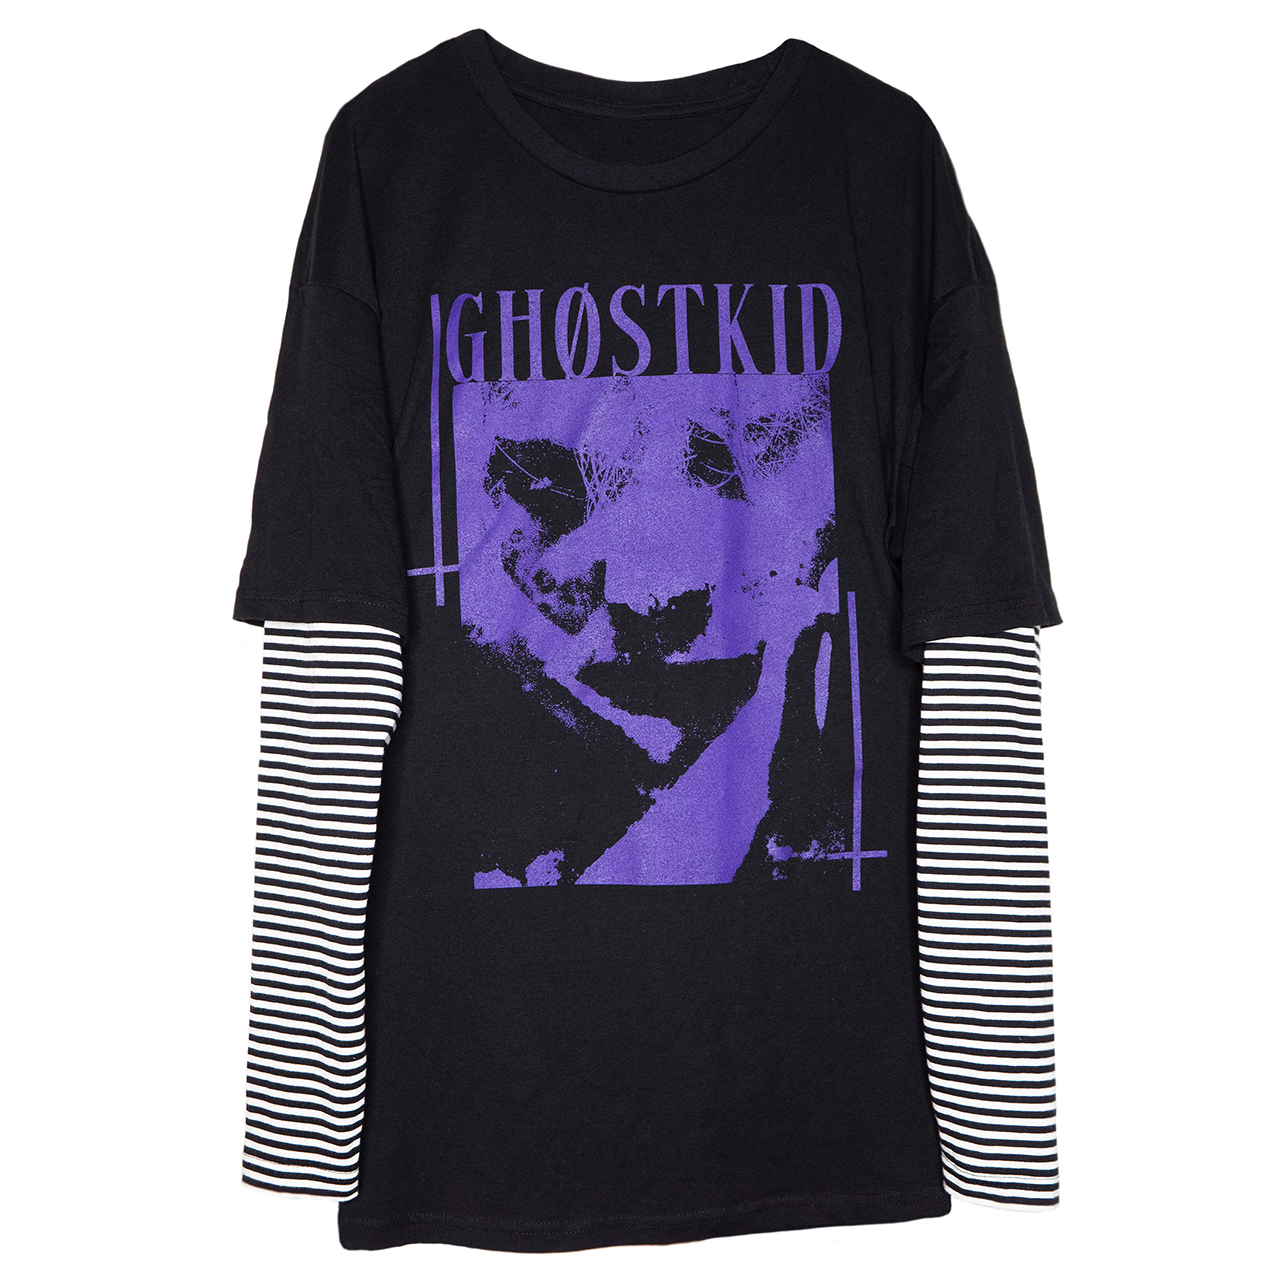 GHOSTKID Ghøstkid - Oversized Double Layer Longsleeve Longsleeve